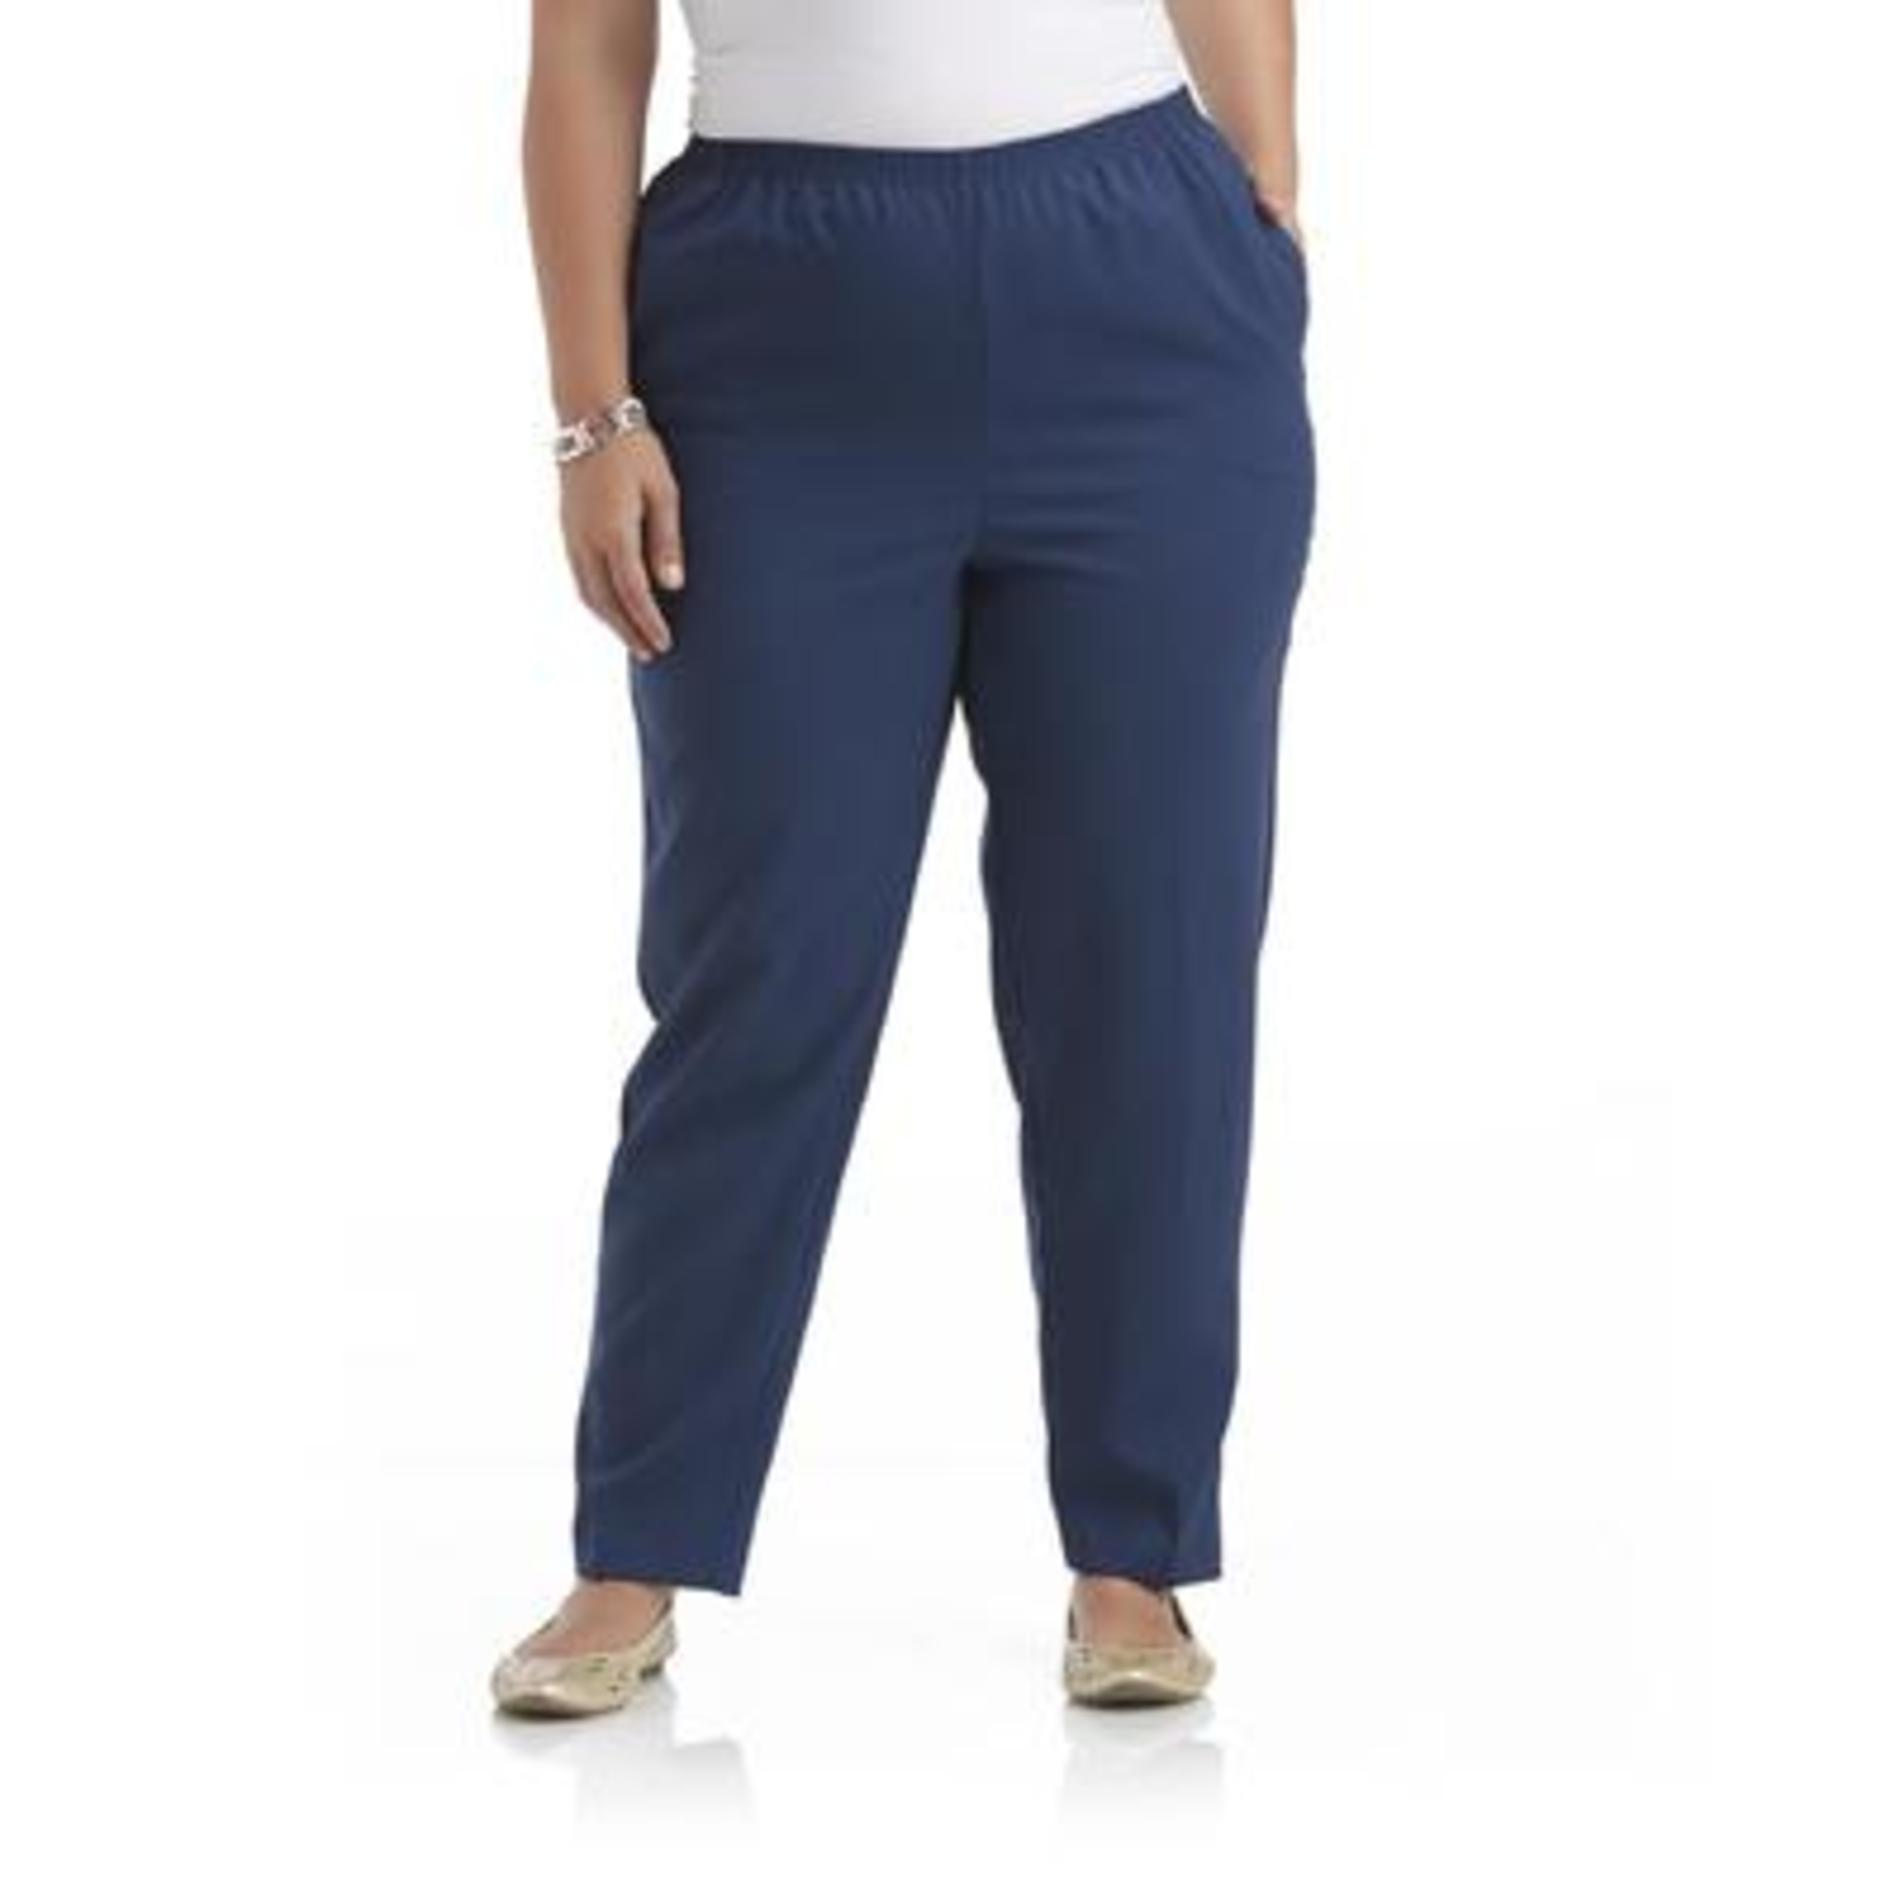 plus size pants kmart photo - 1